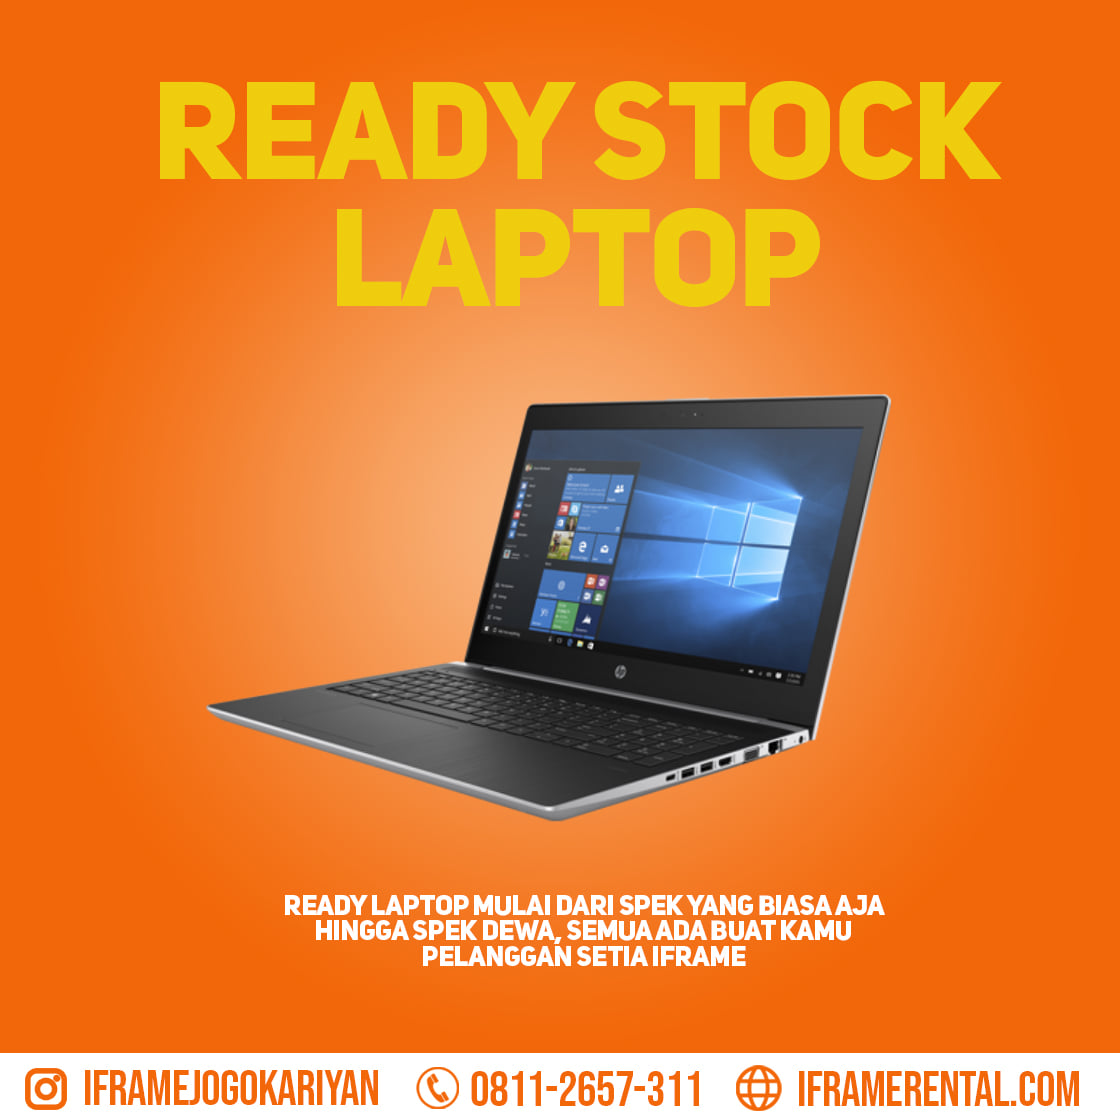 Sewa Laptop di Semarang | 0812.7679.7711 | IFRAME Rental Laptop